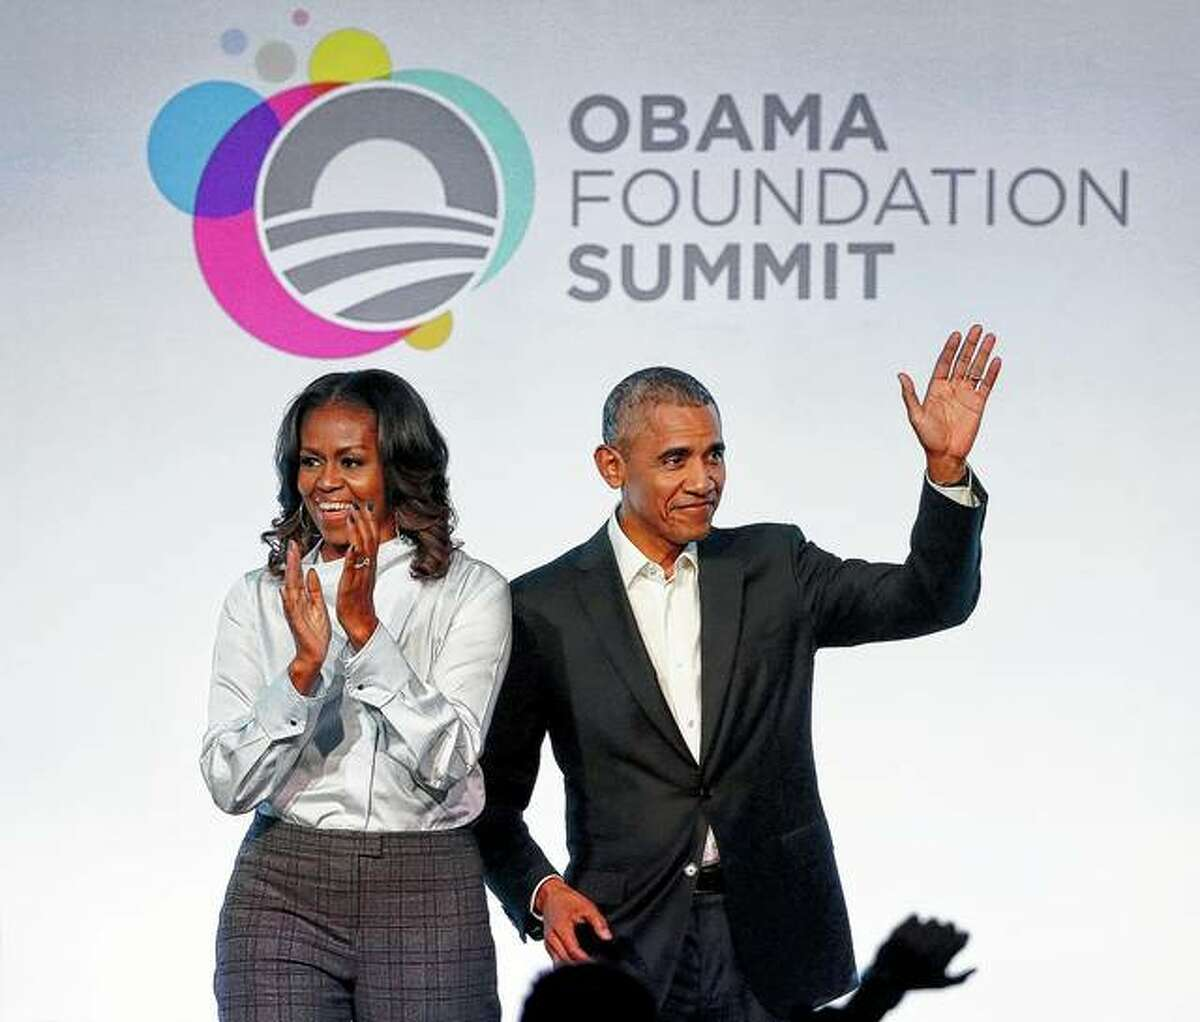 Former President Barack Obama (right) and former first lady Michelle Obama arrive in October 2017 for the first session of the Obama Foundation Summit in Chicago. Obama's foundation collected contributions of more than $1 million from 11 firms and individuals in the first three months of 2019, records show. The Obama Foundation's donor list, which is updated quarterly, included the AT&T Foundation and the W.K. Kellogg Foundation, along with other family trusts and foundations.